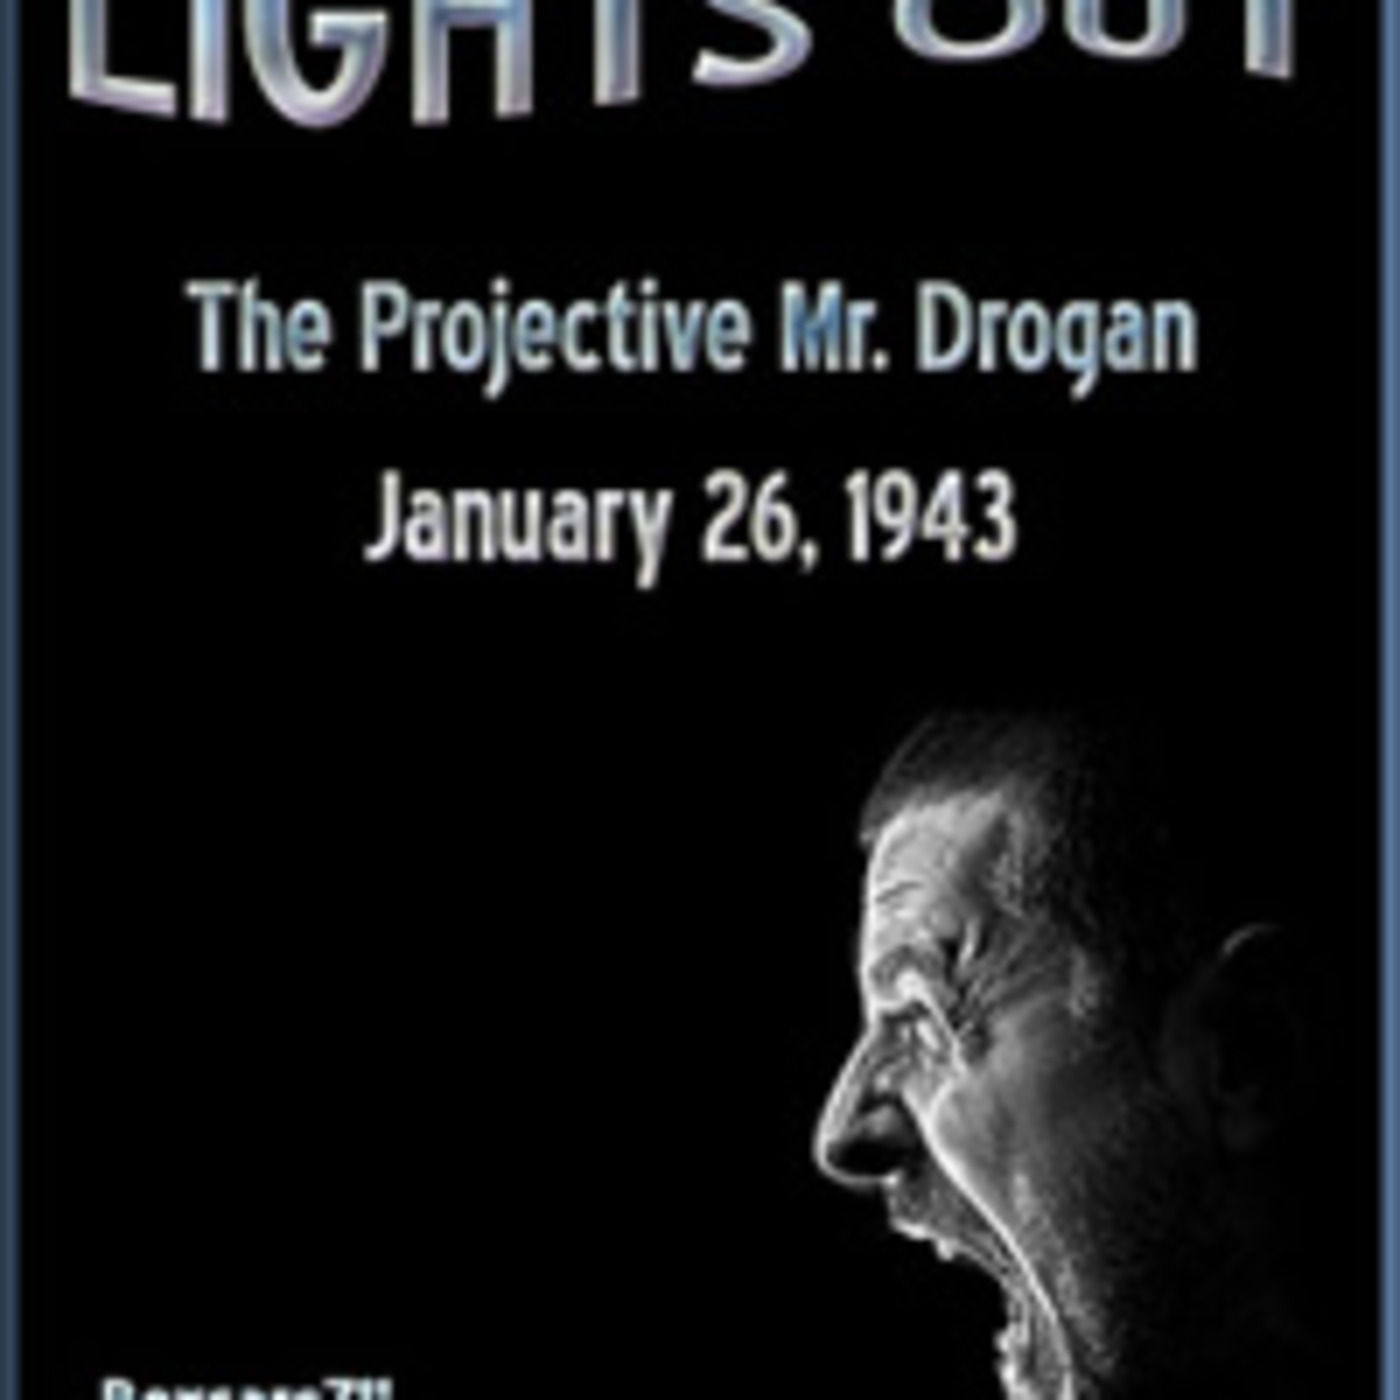 Lights Out - The Protective Mr. Drogen (01-26-43)